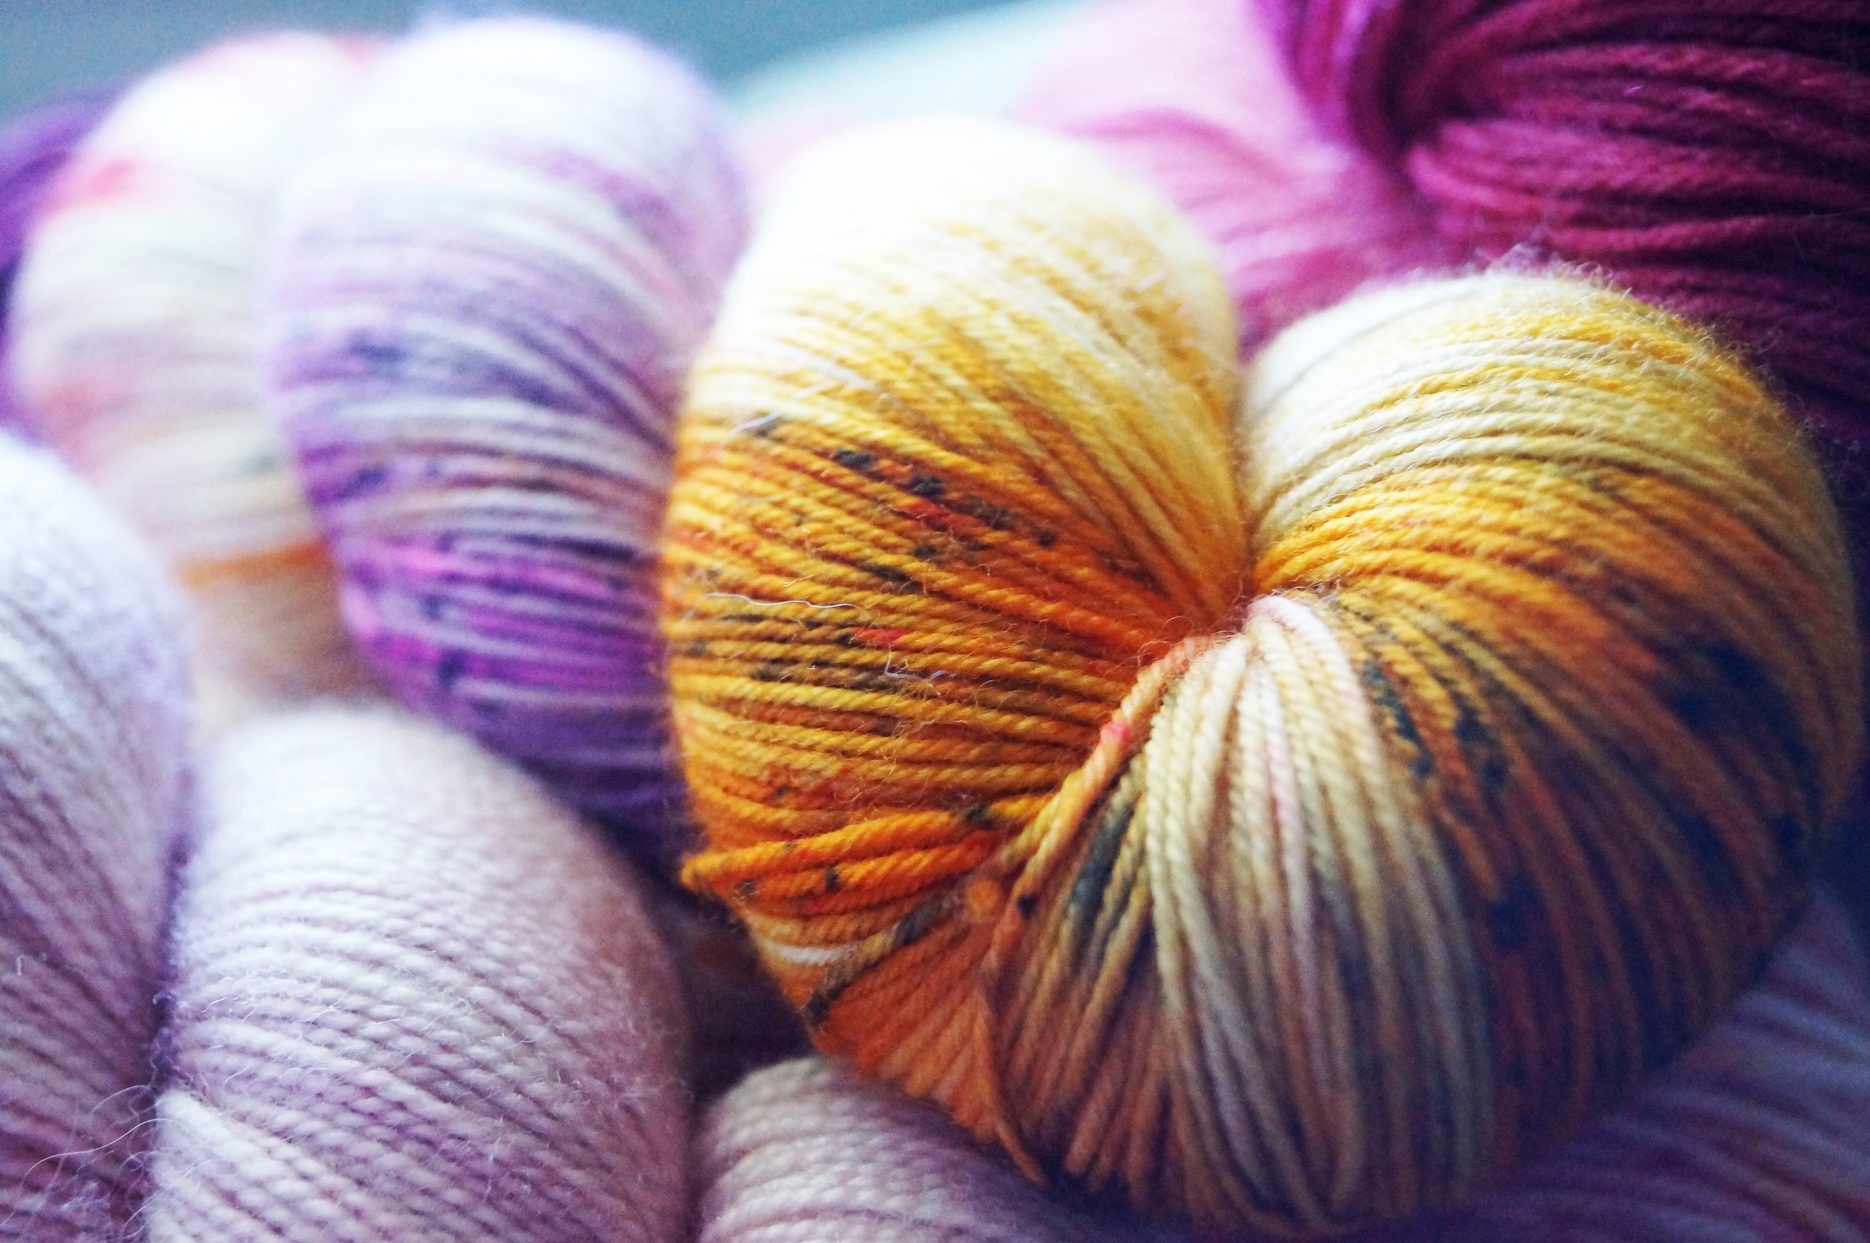 Several colorful skeins of yarn. Photo by Hannah Cole on Unsplash